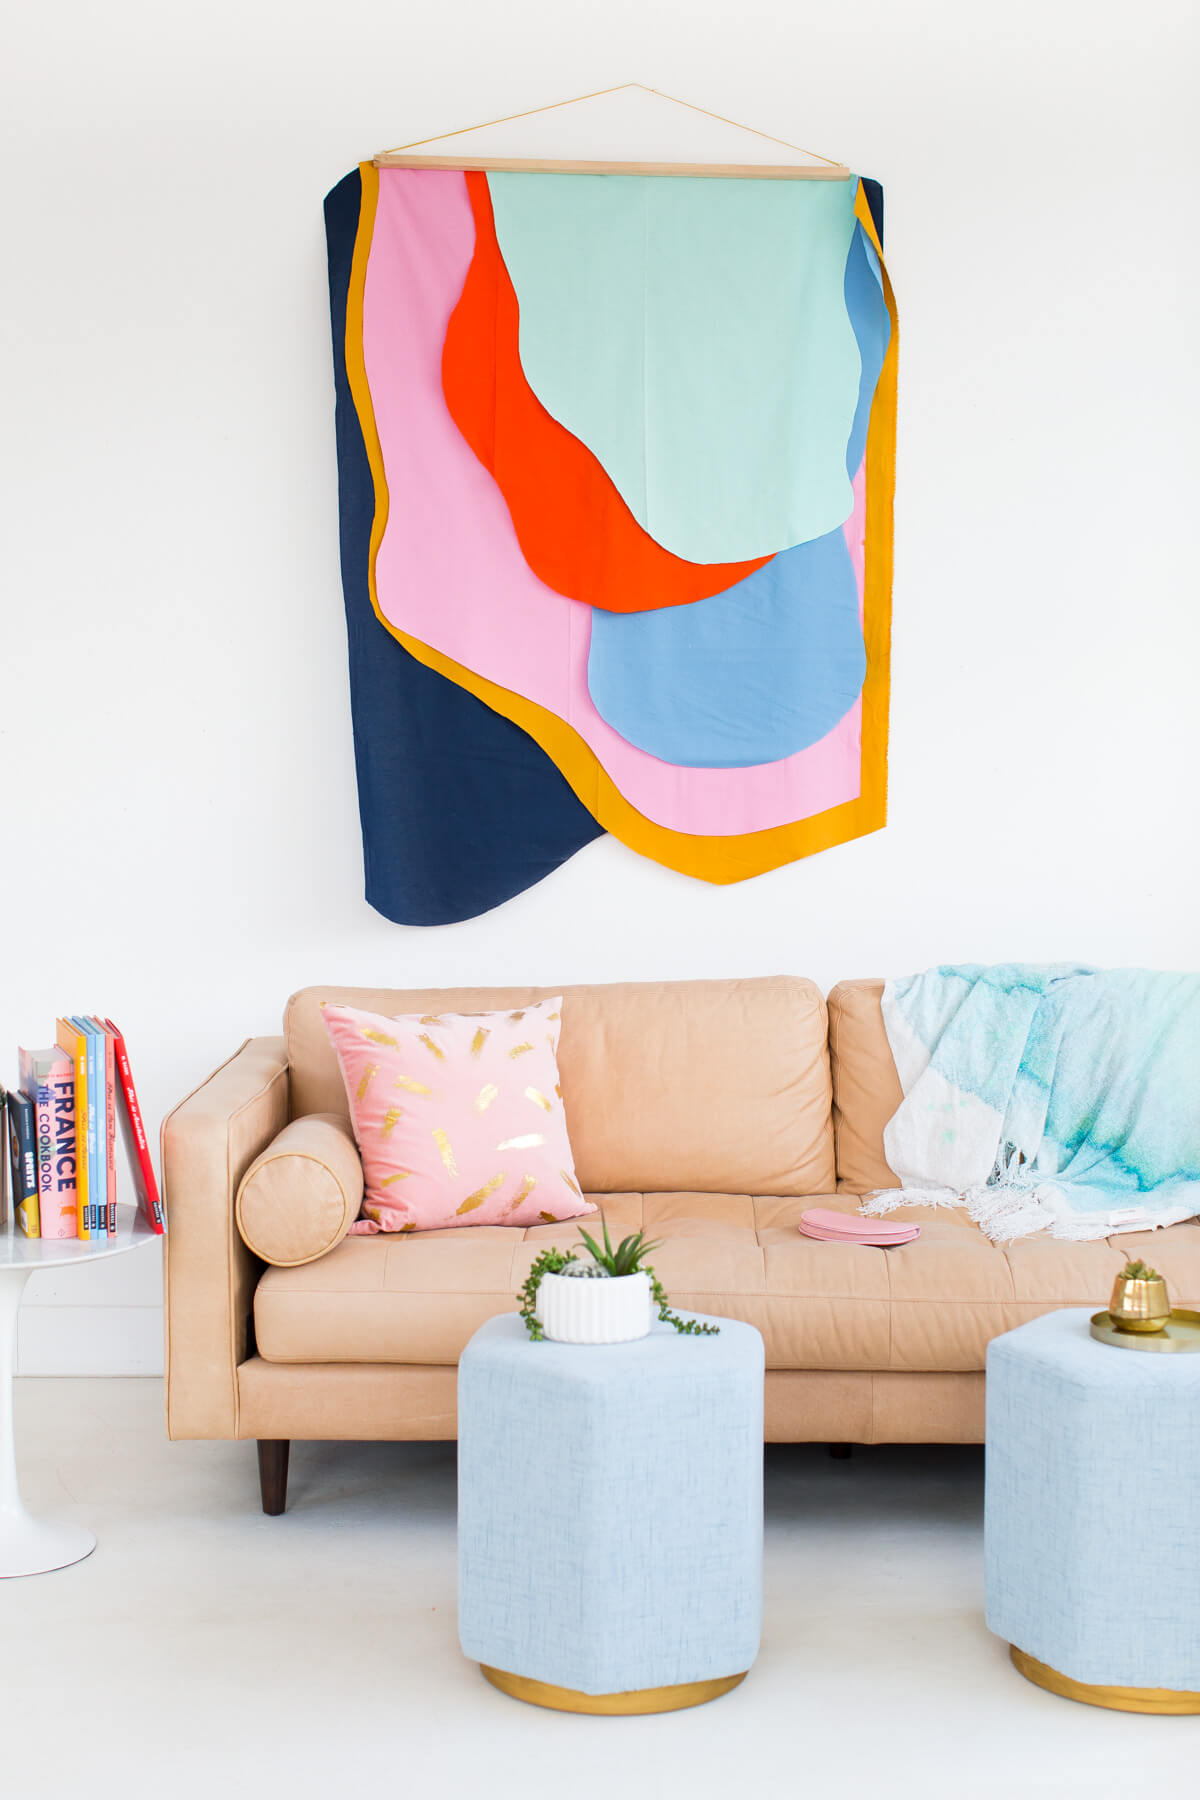 37 Best Diy Wall Hanging Ideas And Designs For 2021